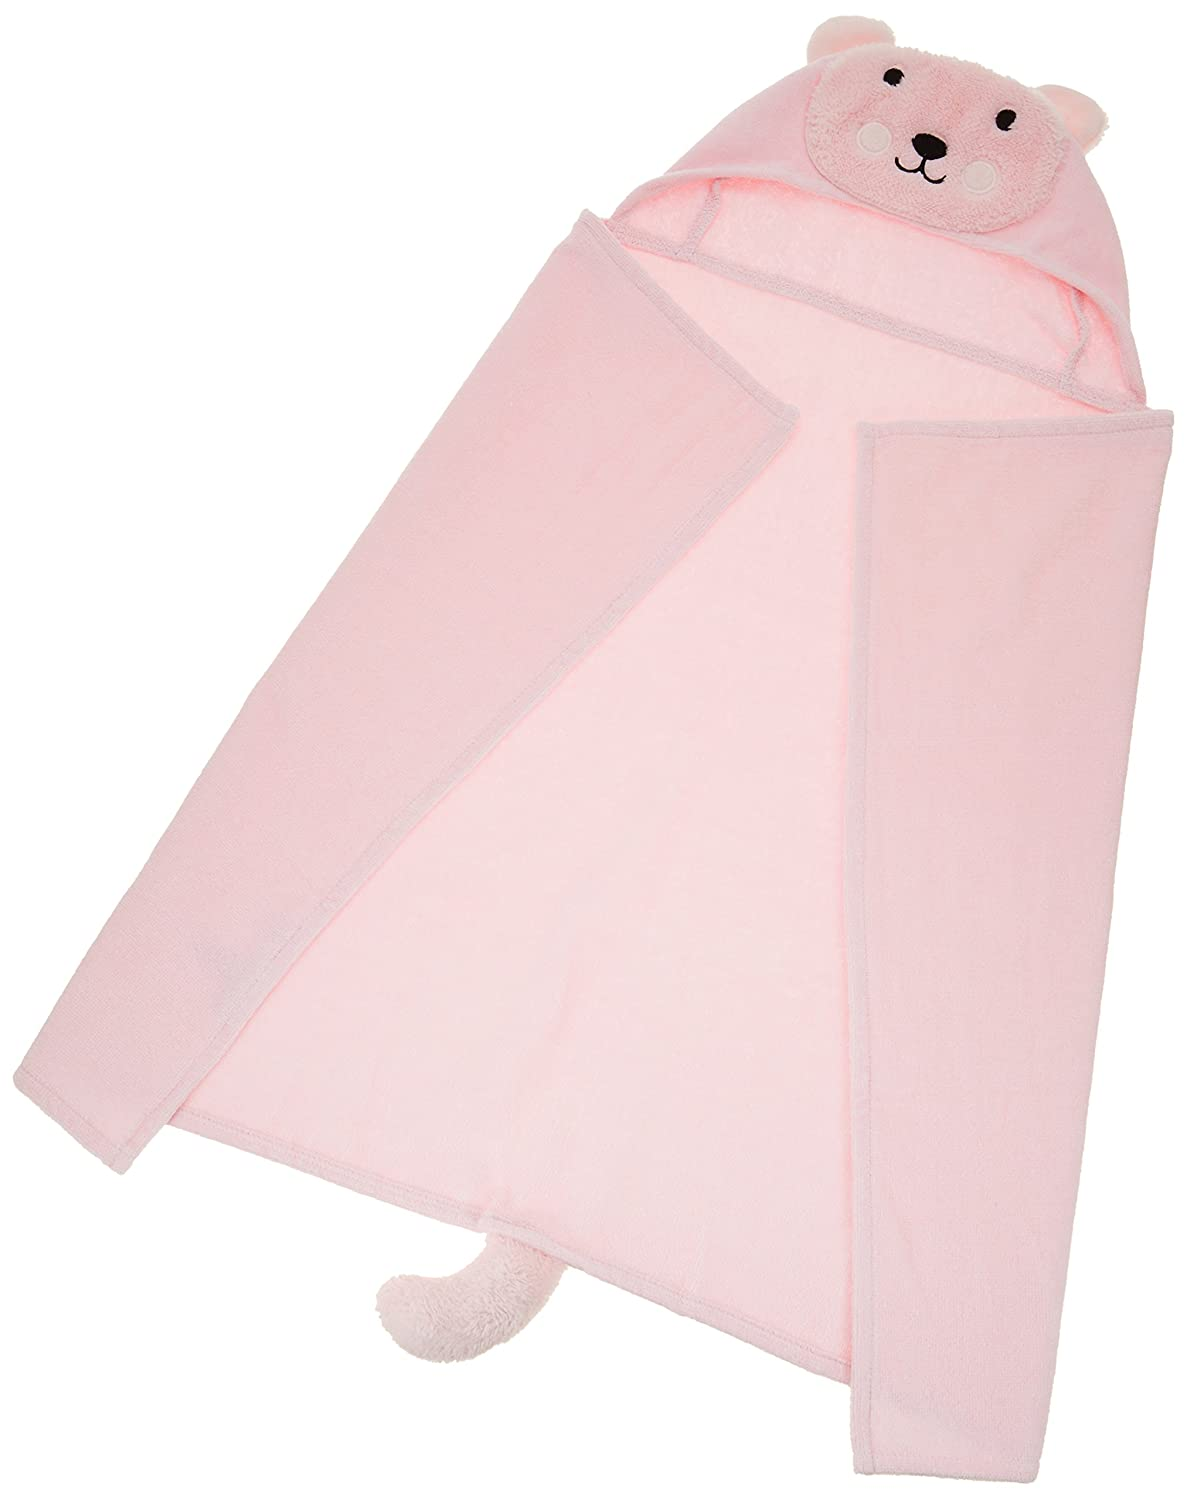 Amazon.com : Elegant Baby Bath Best Bath Gift - Cotton Towel Wrap, Cute Pink Mouse Princess : Baby